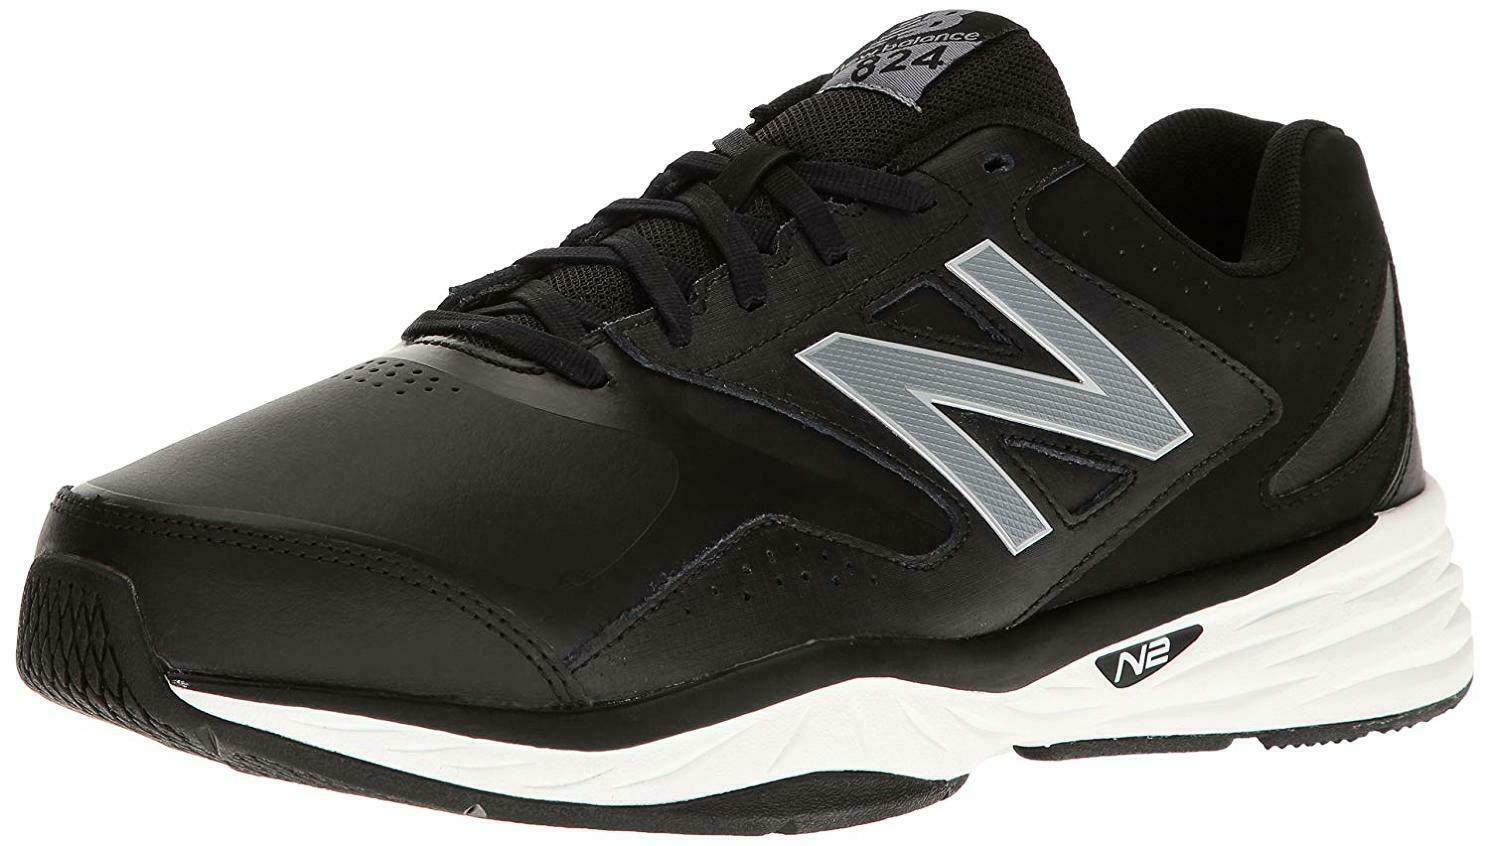 New Balance Men's MX824v1 Training shoes